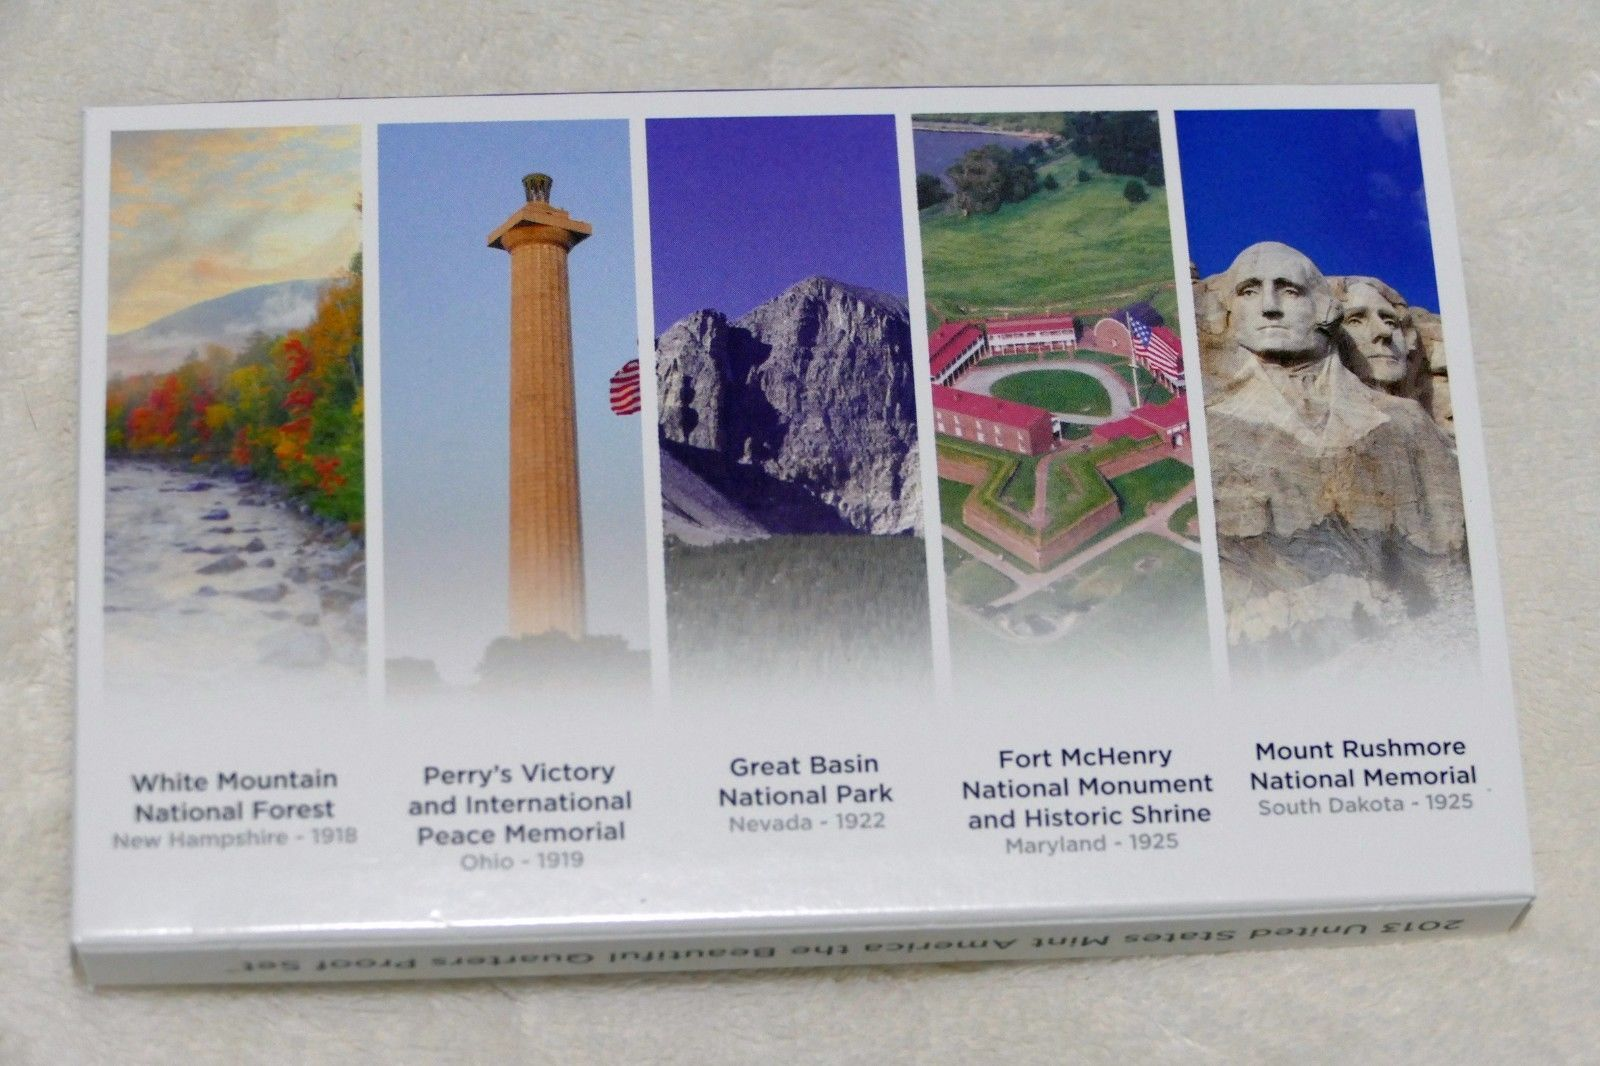 2013  ATB QUARTERS PROOF SET W/ THE MT. RUSHMORE VOTED BEST CIRCULATING COIN